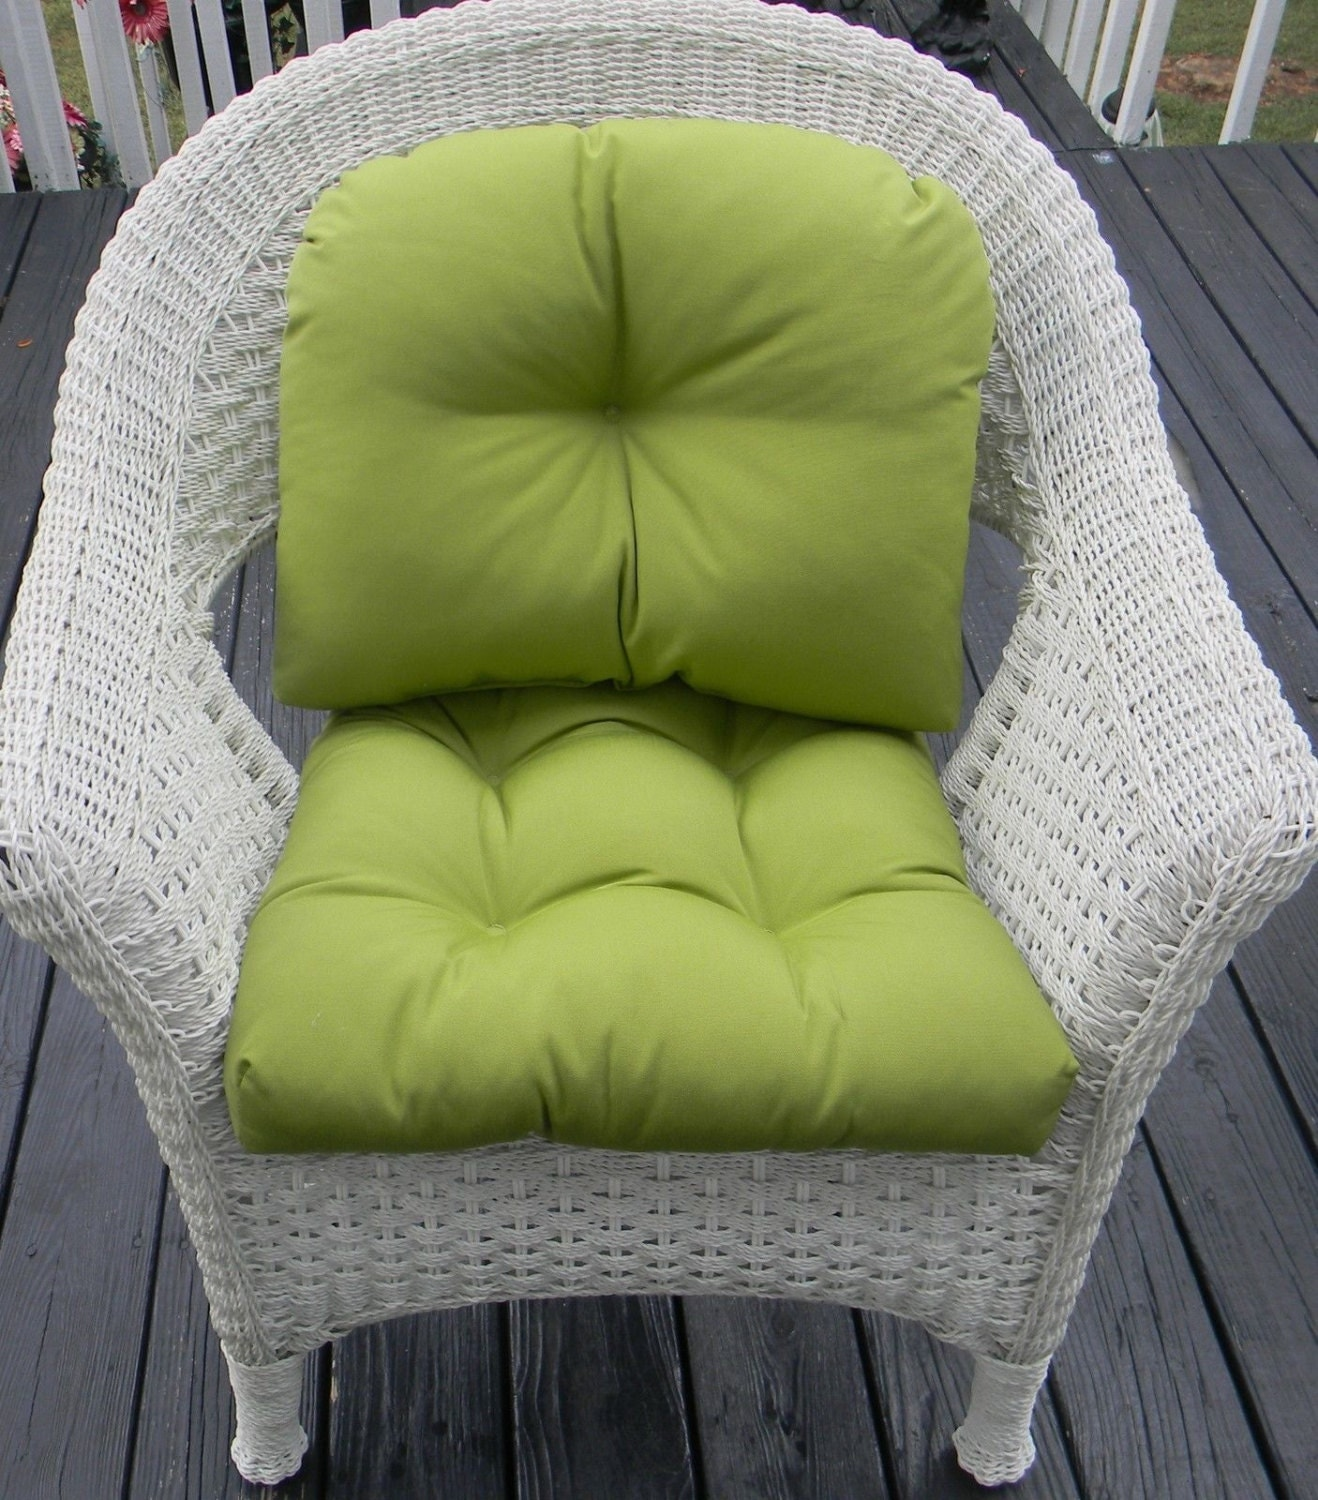 Indoor outdoor wicker chair cushion back pillow cushion for Chair pillow